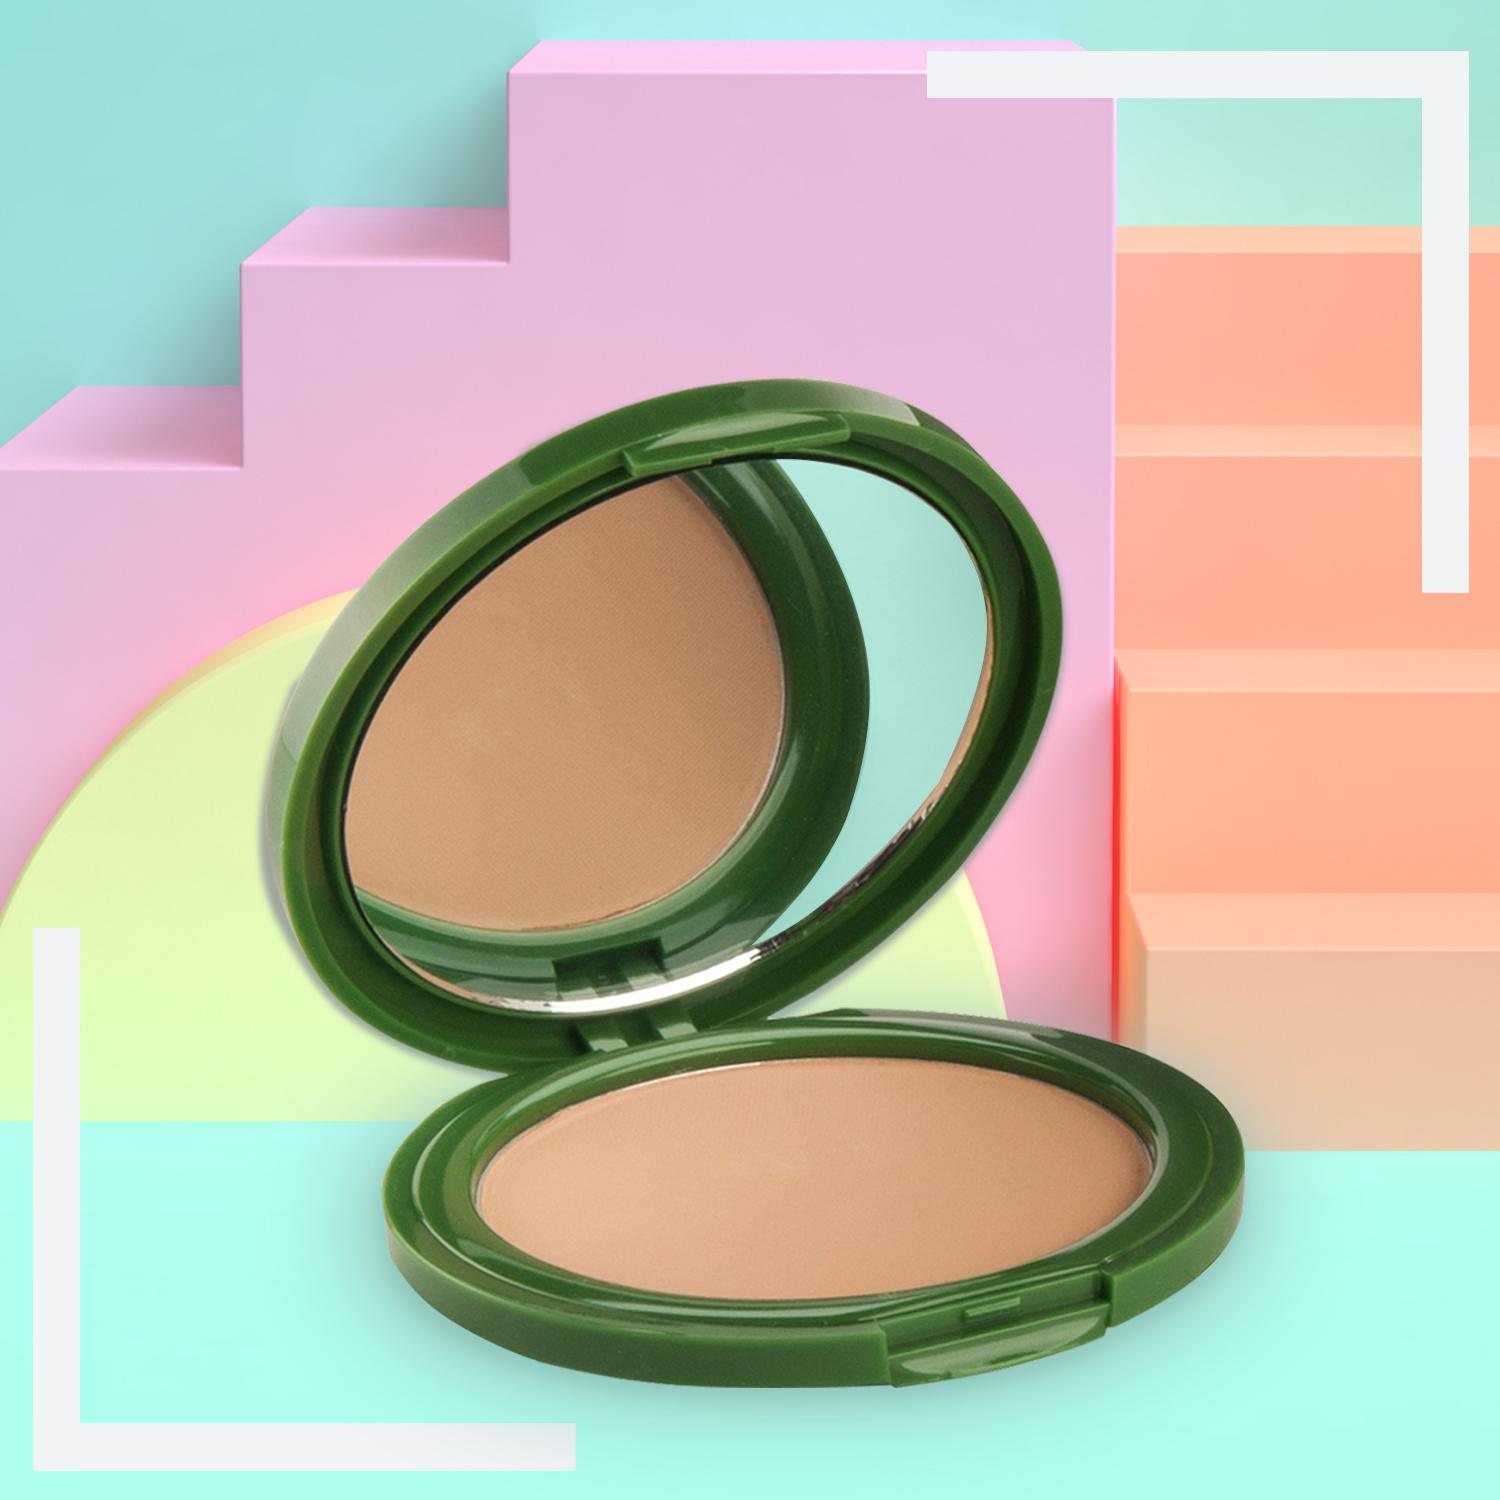 Fashion21 Cucumber Pressed Powder Philippines